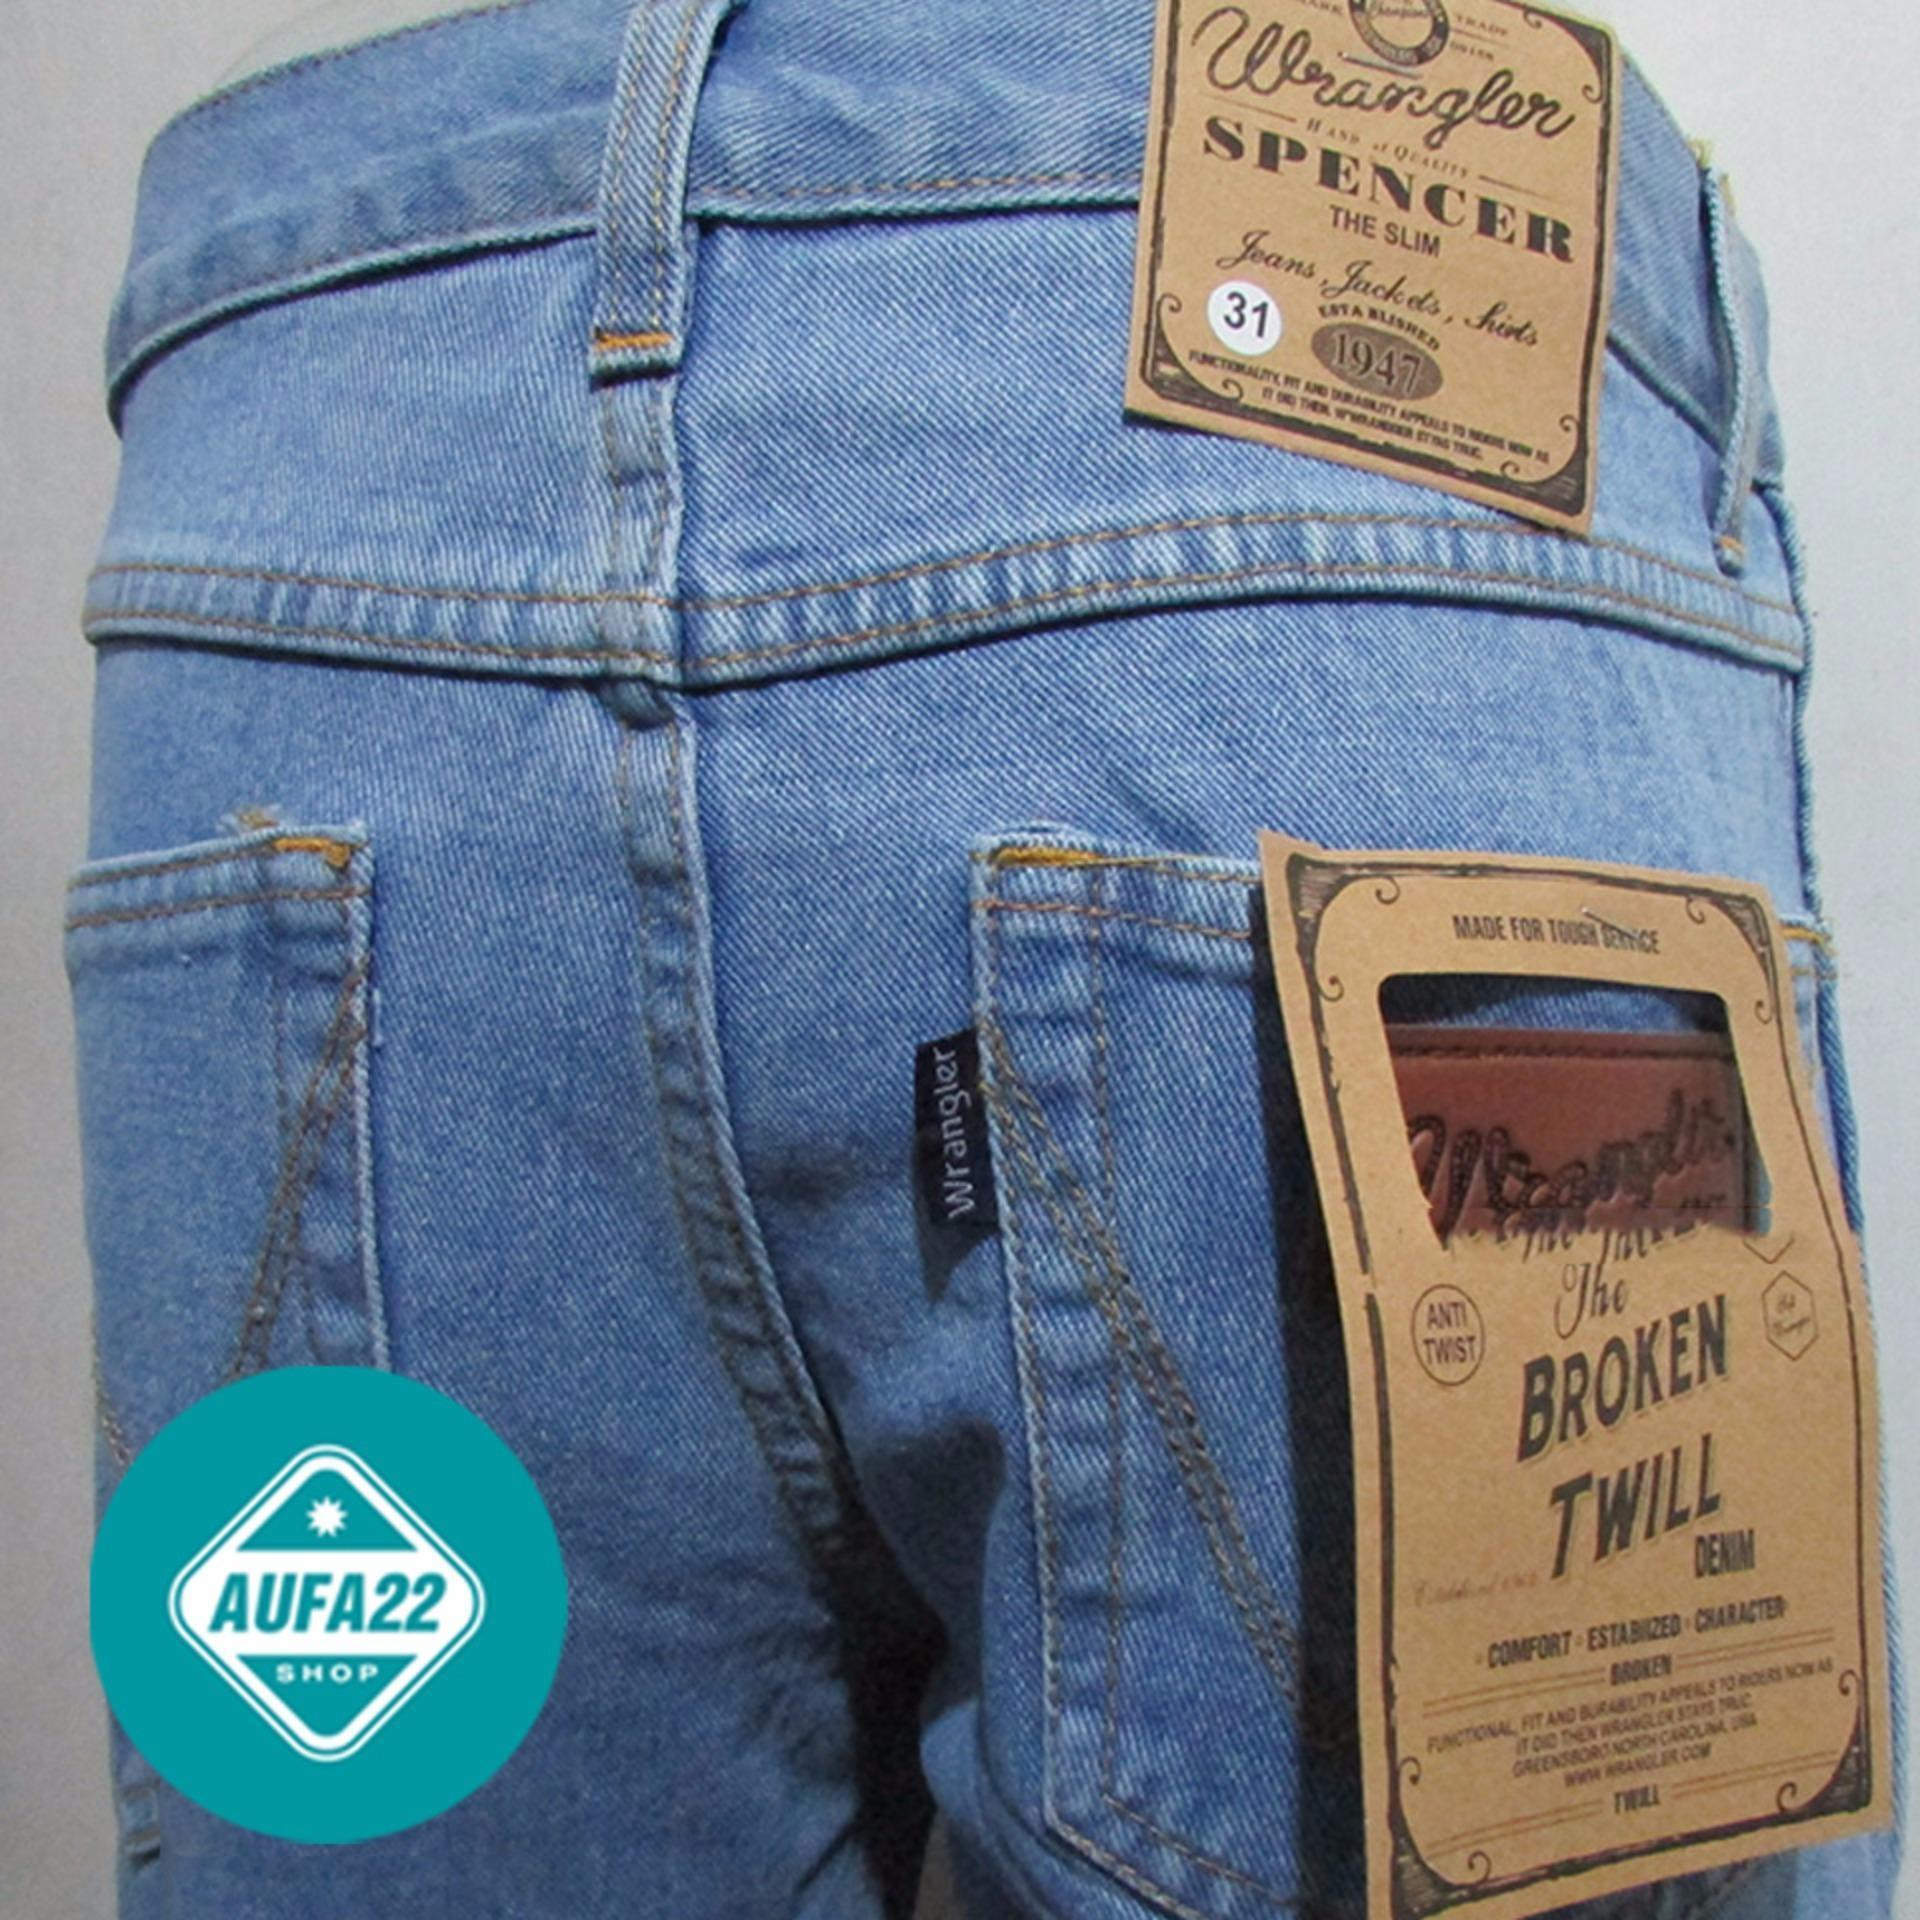 Celana Jeans Wrangler /lea Biru Tua Model Straight By Nee Cloth.